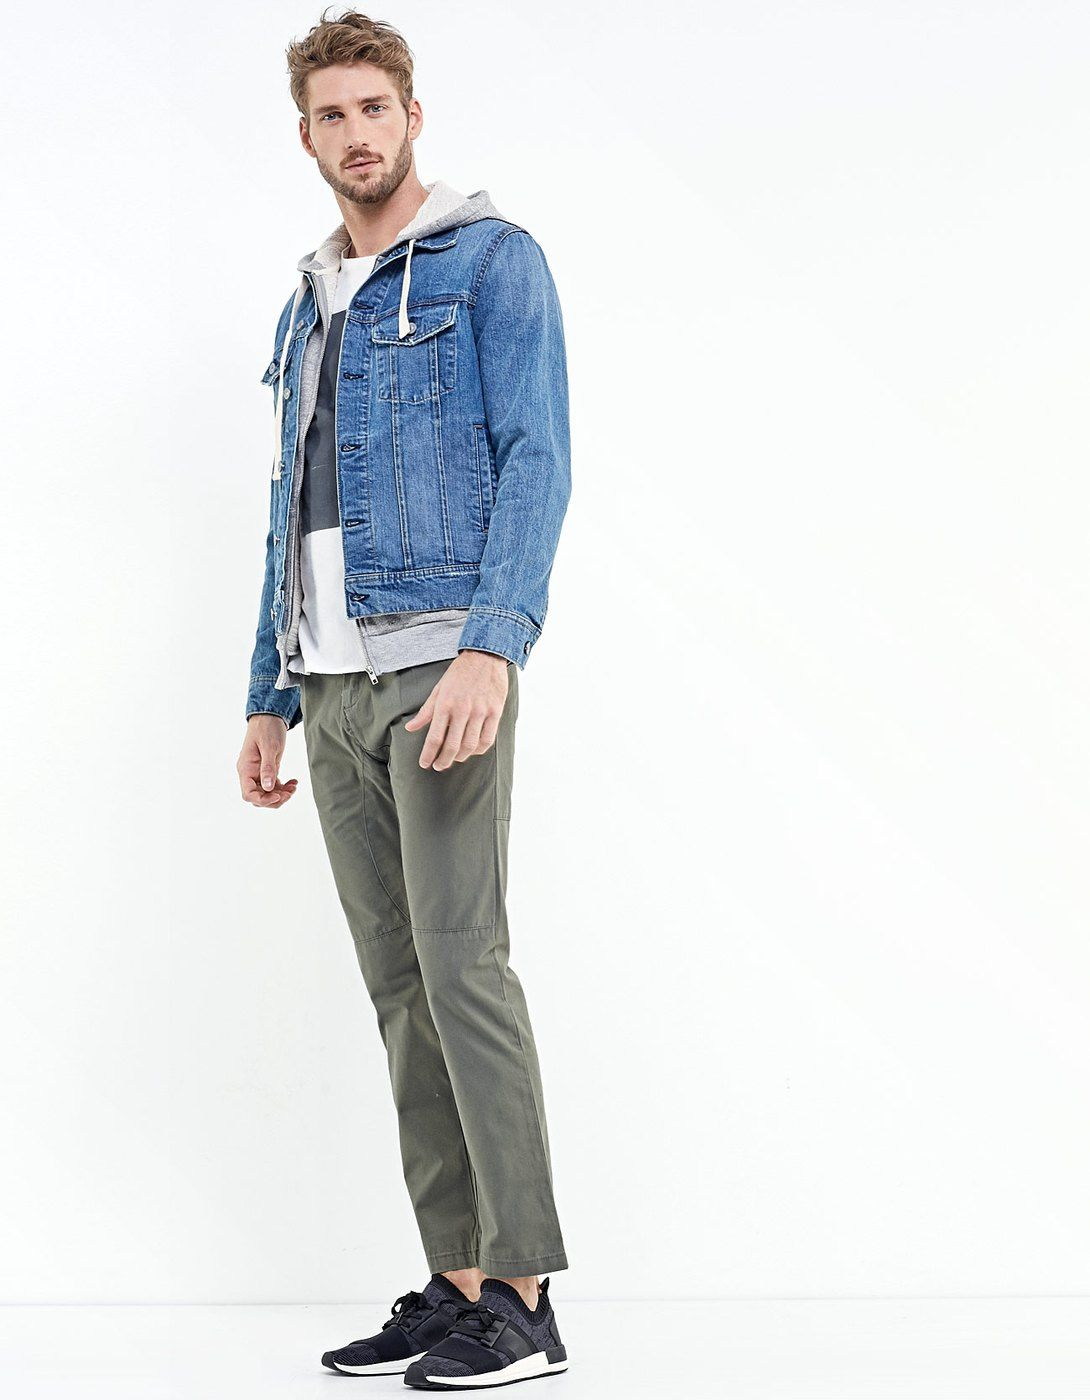 044aade76a Stradivarius denim jacket